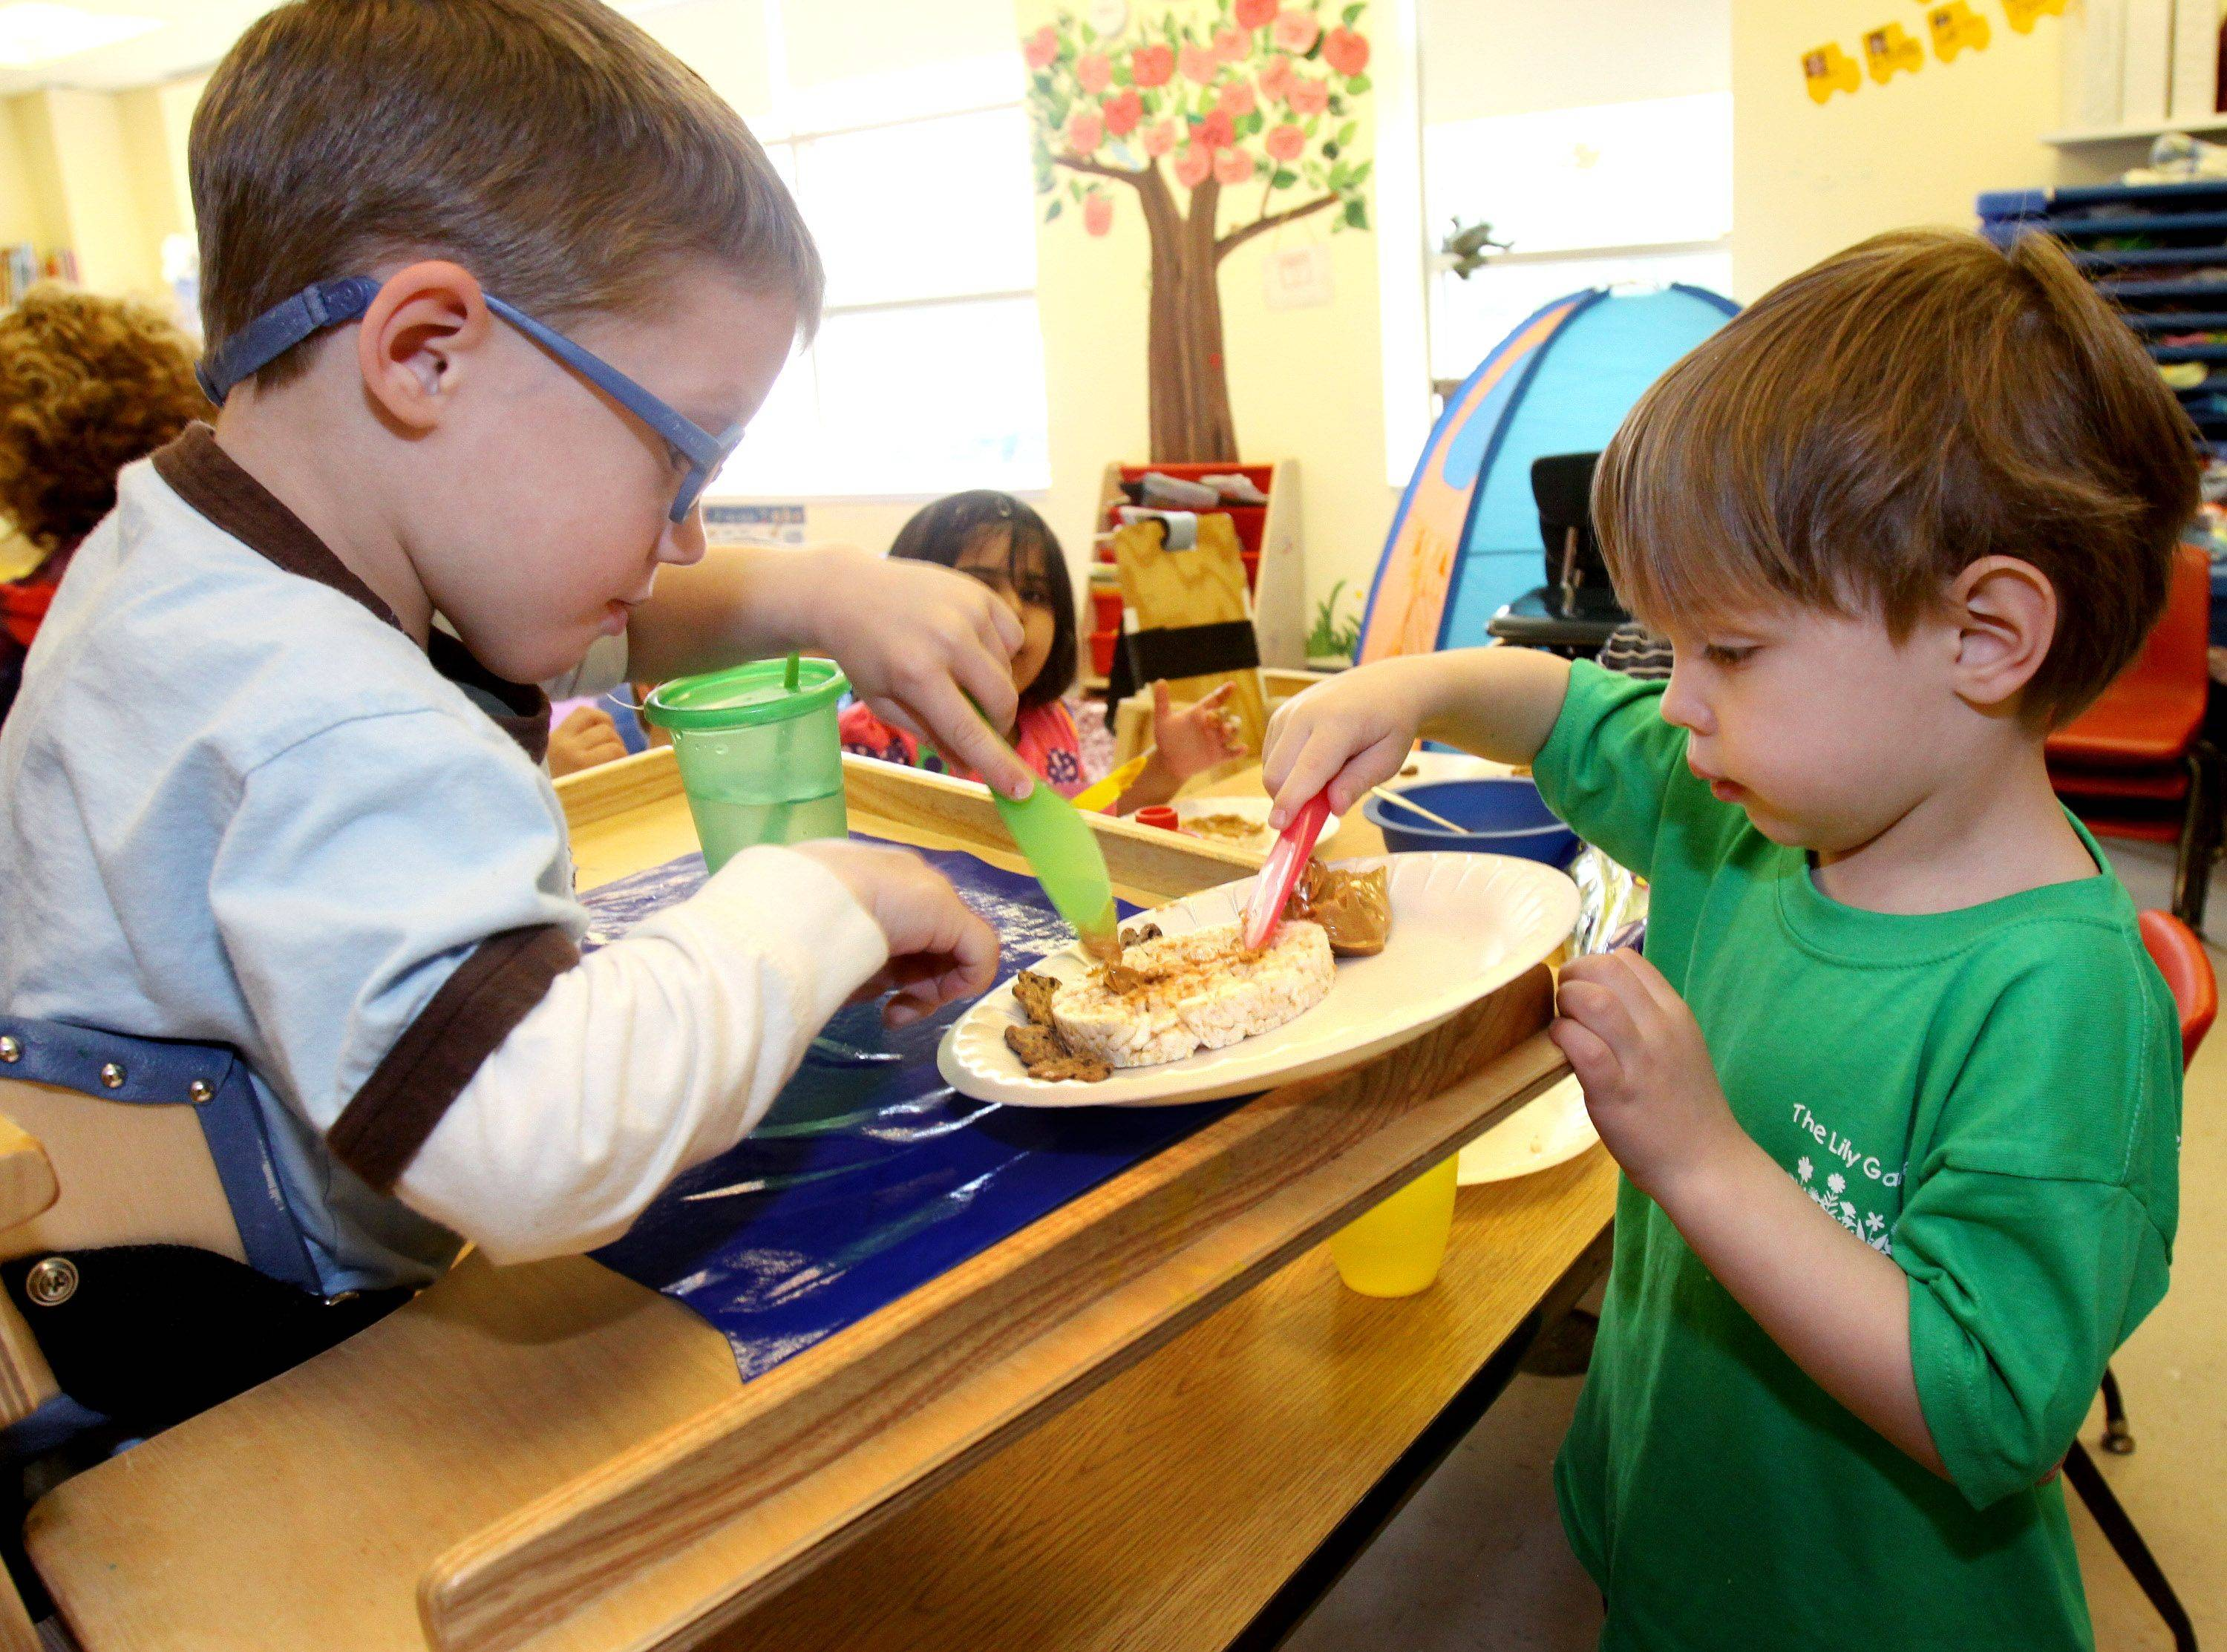 Charlie Krupka, 5, left, gets a little help with spreading his peanut butter from Evan Lopresti, 4, at the Lily Garden all-inclusive child care center at Easter Seals in Villa Park.